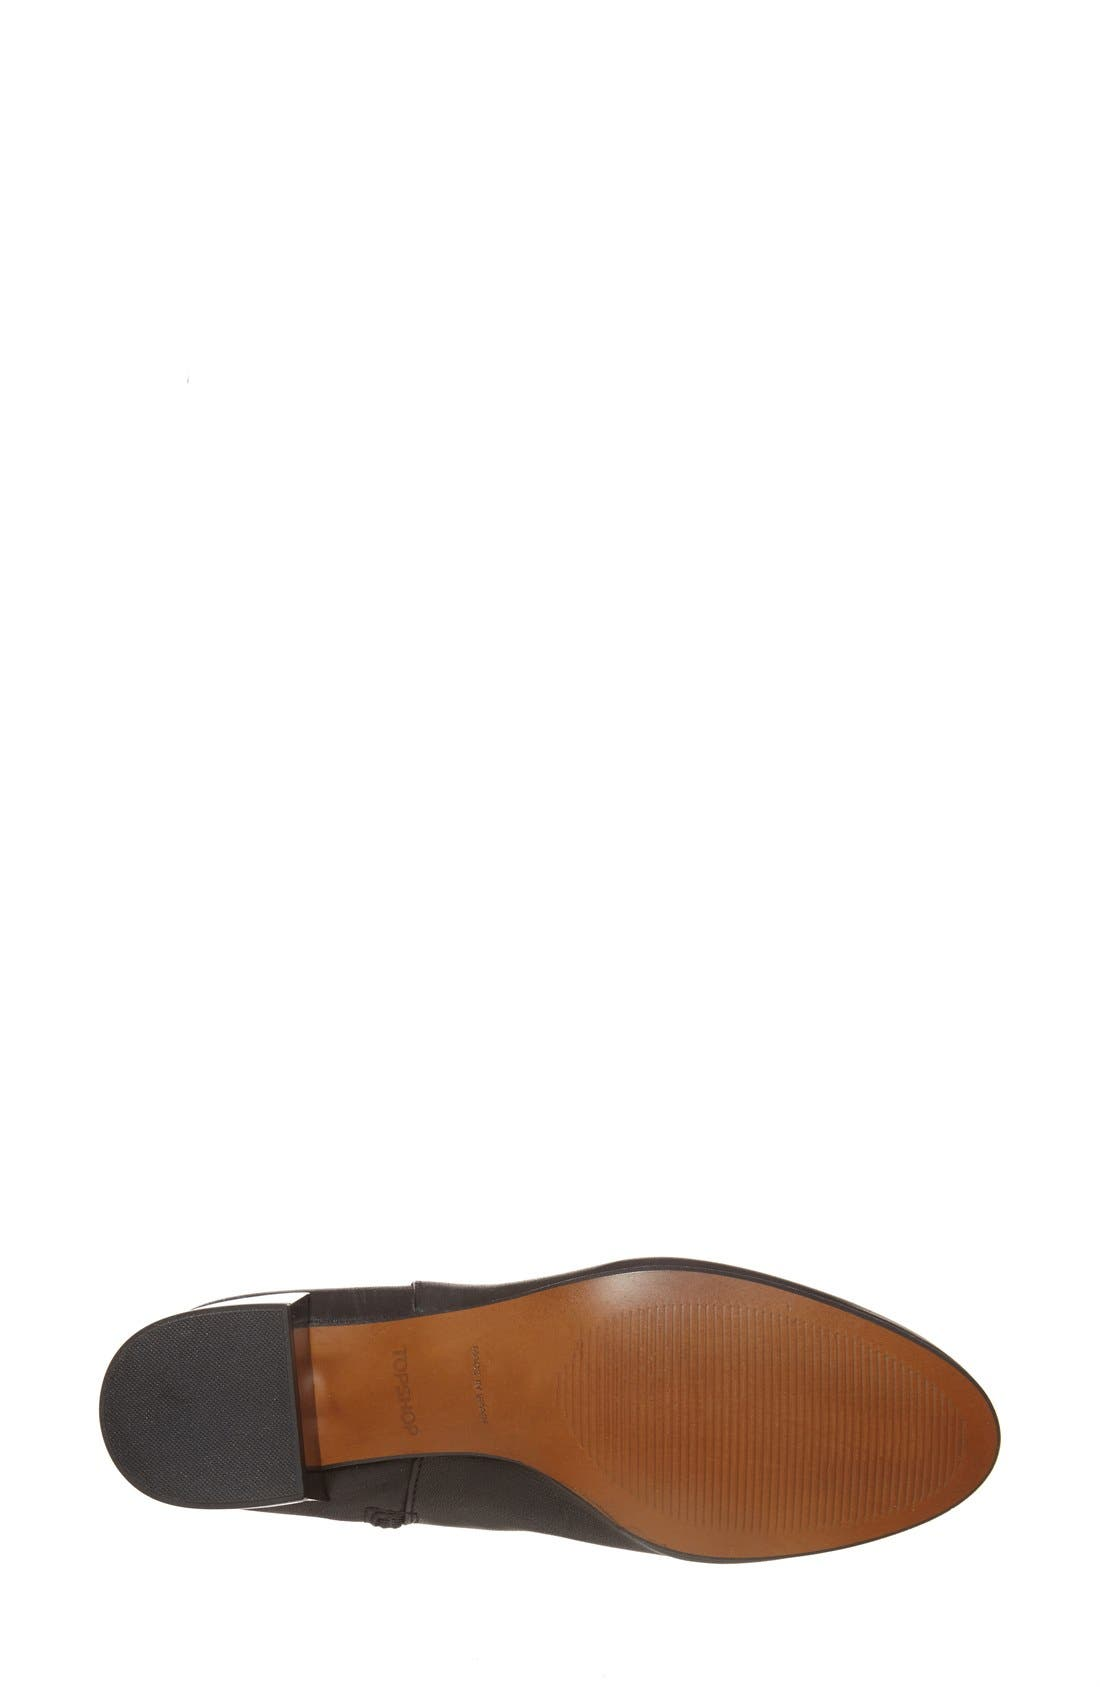 Alternate Image 4  - Topshop 'Marbles' Ankle Boot (Women)